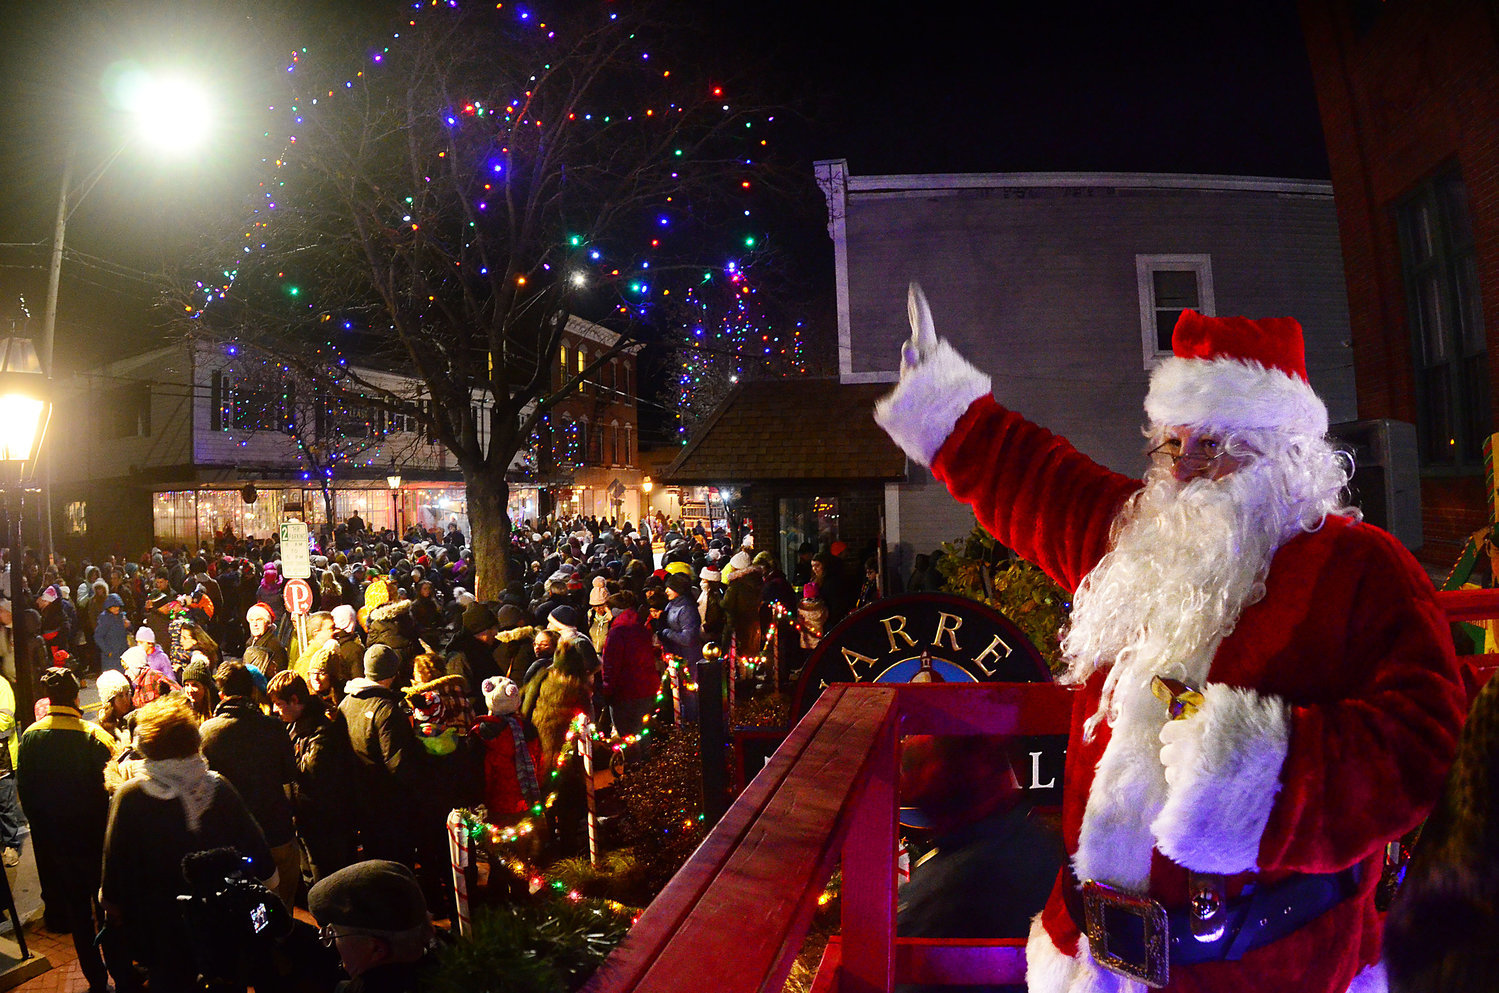 The Warren Holiday Festival usually draws thousands downtown for the annual lighting the last Friday of November. This year, things will look a good bit different but don't worry: Santa is still coming.